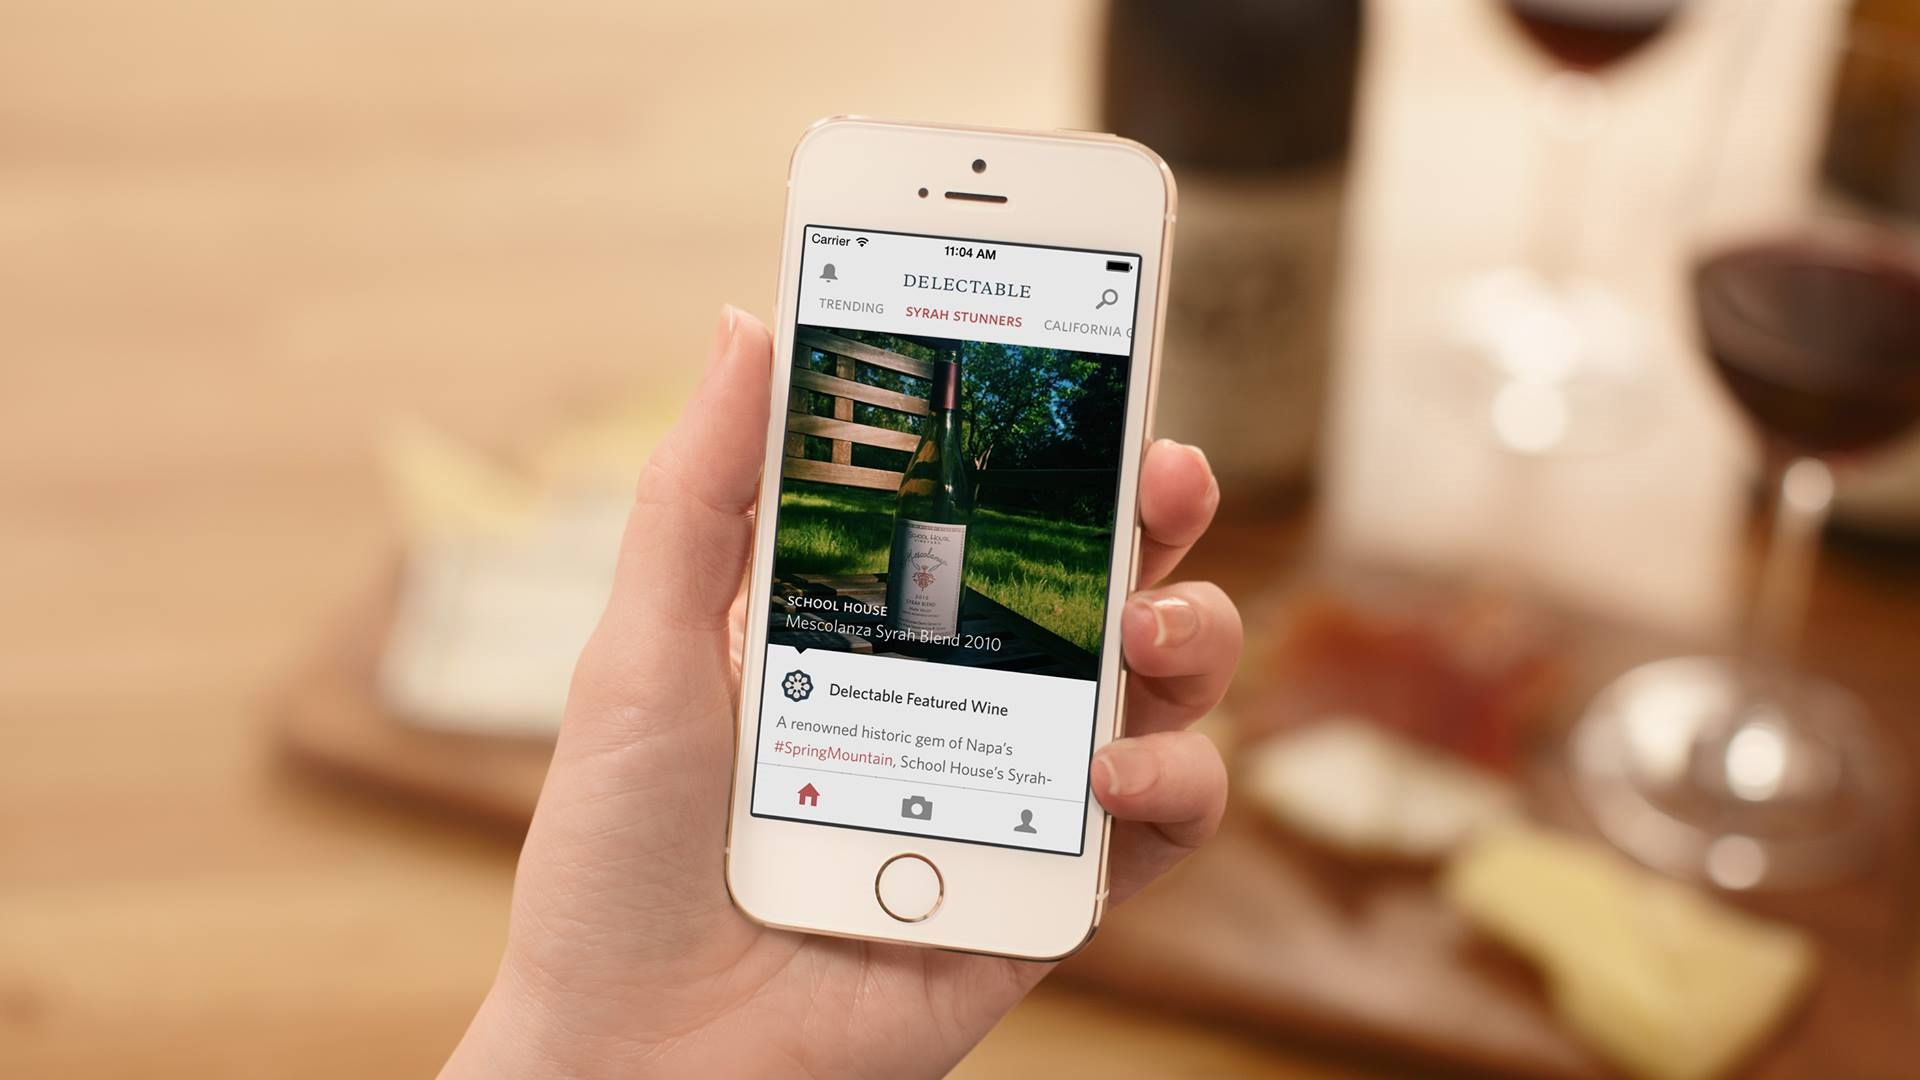 Delectable wine app on an iPhone.